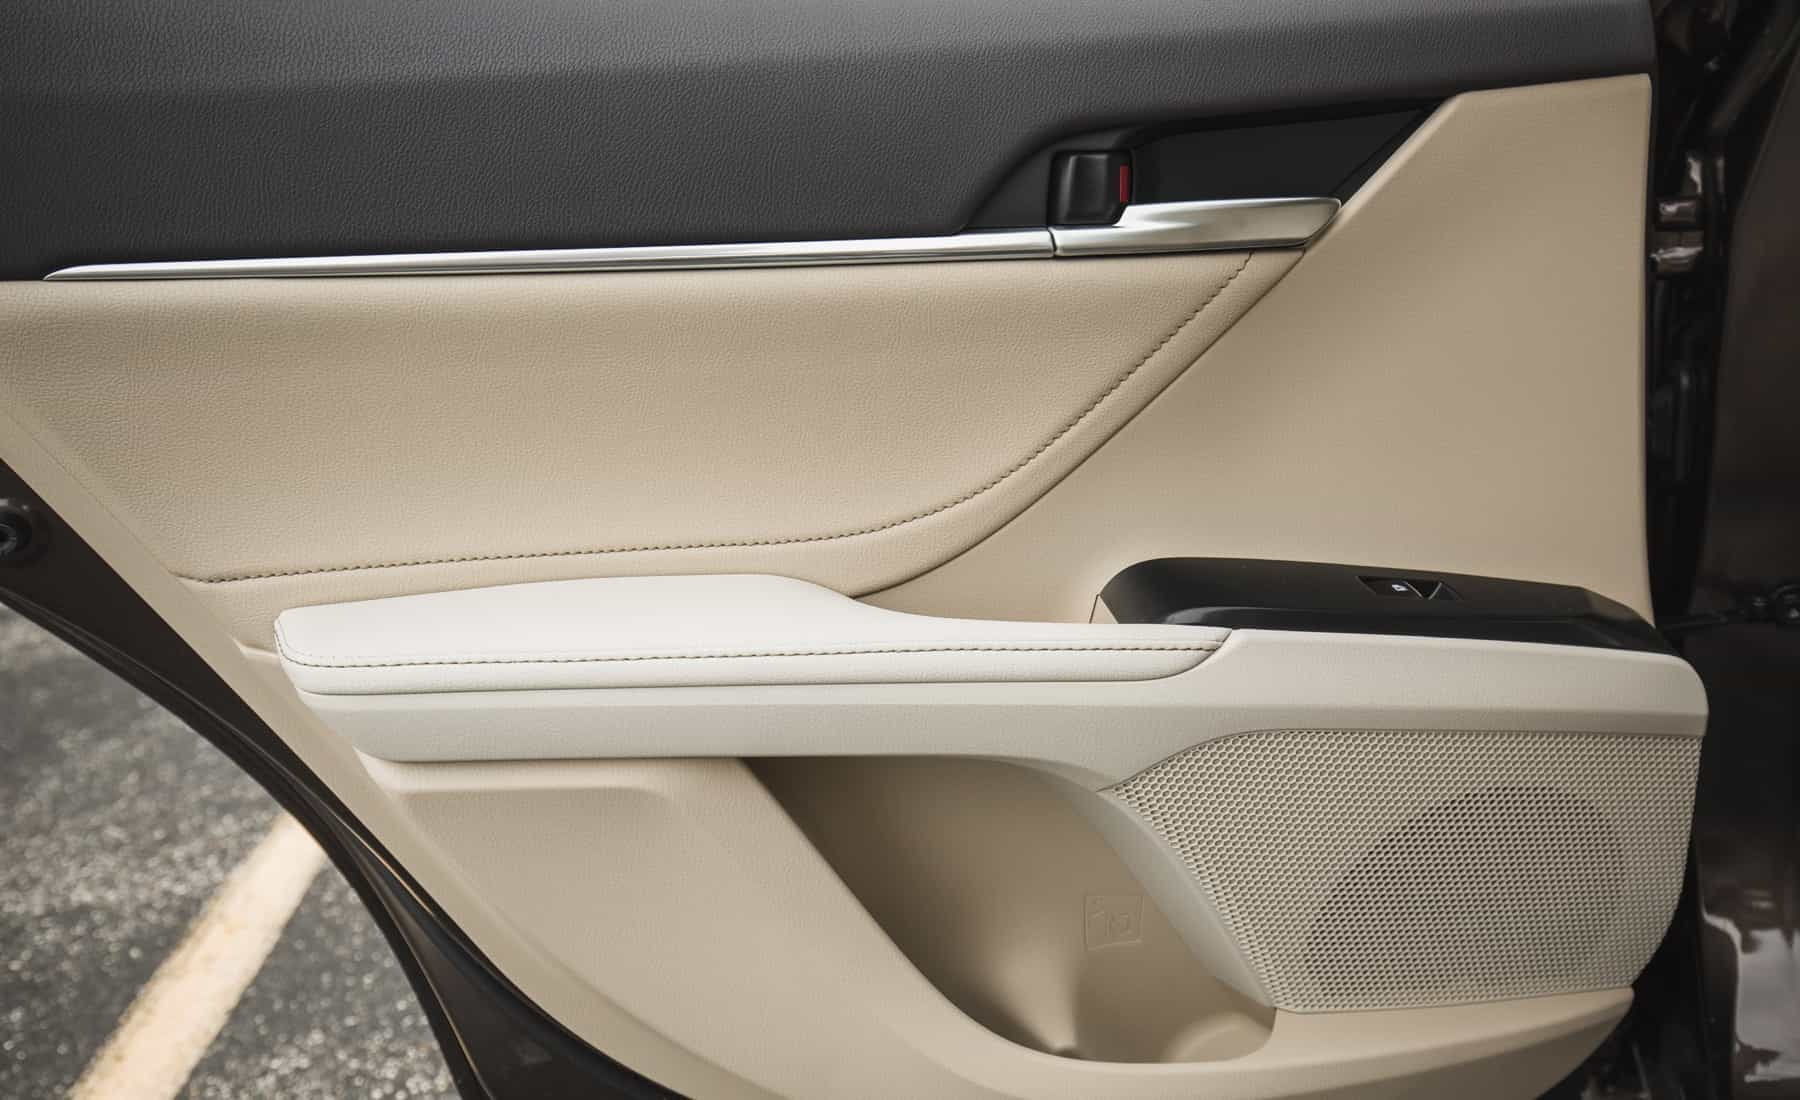 2018 Toyota Camry Hybrid XLE Interior View Door Trim Rear (Photo 27 of 41)